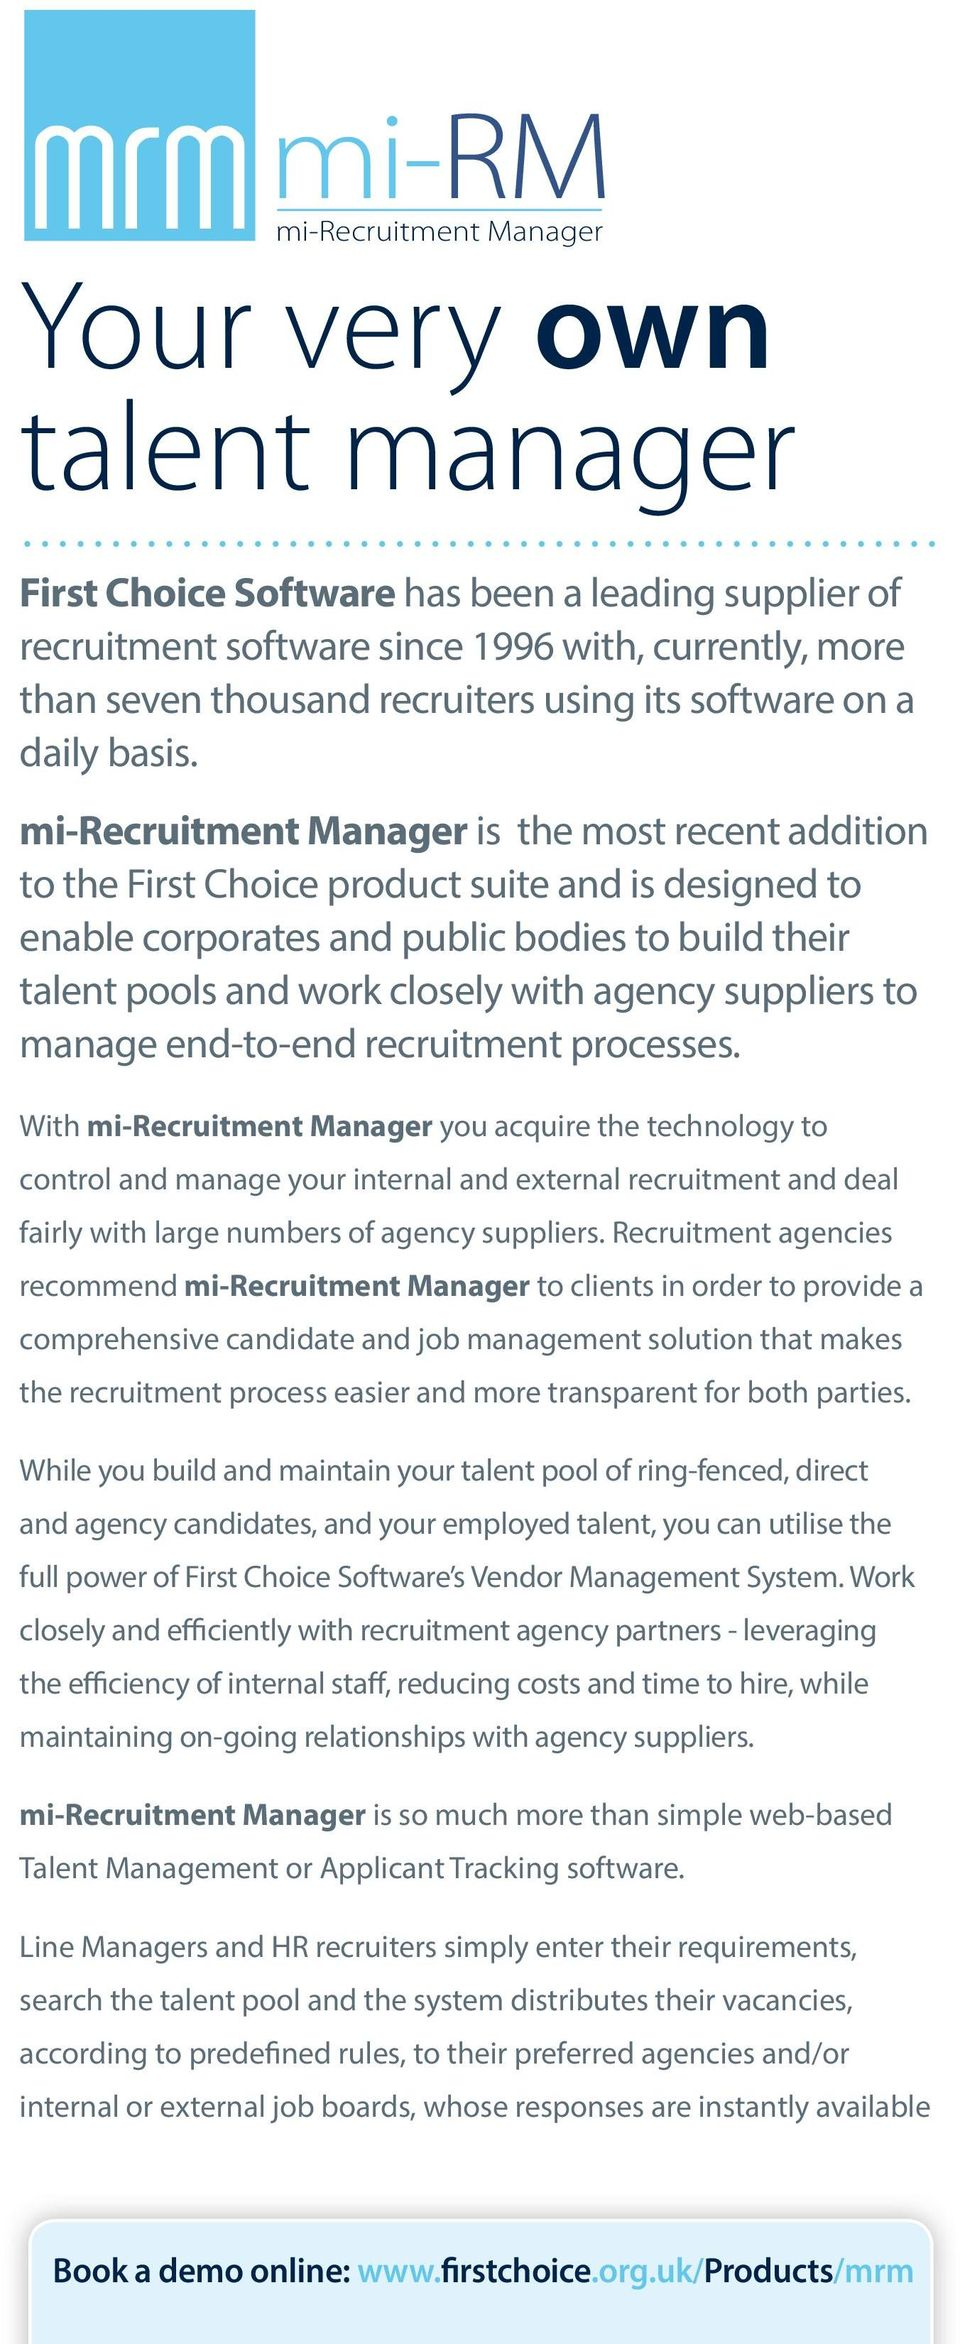 mi-recruitme Manager is the most rece addition to the First Choice product suite and is designed to enabe corporates and pubic bodies to buid their tae poos and work cosey with agency suppiers to